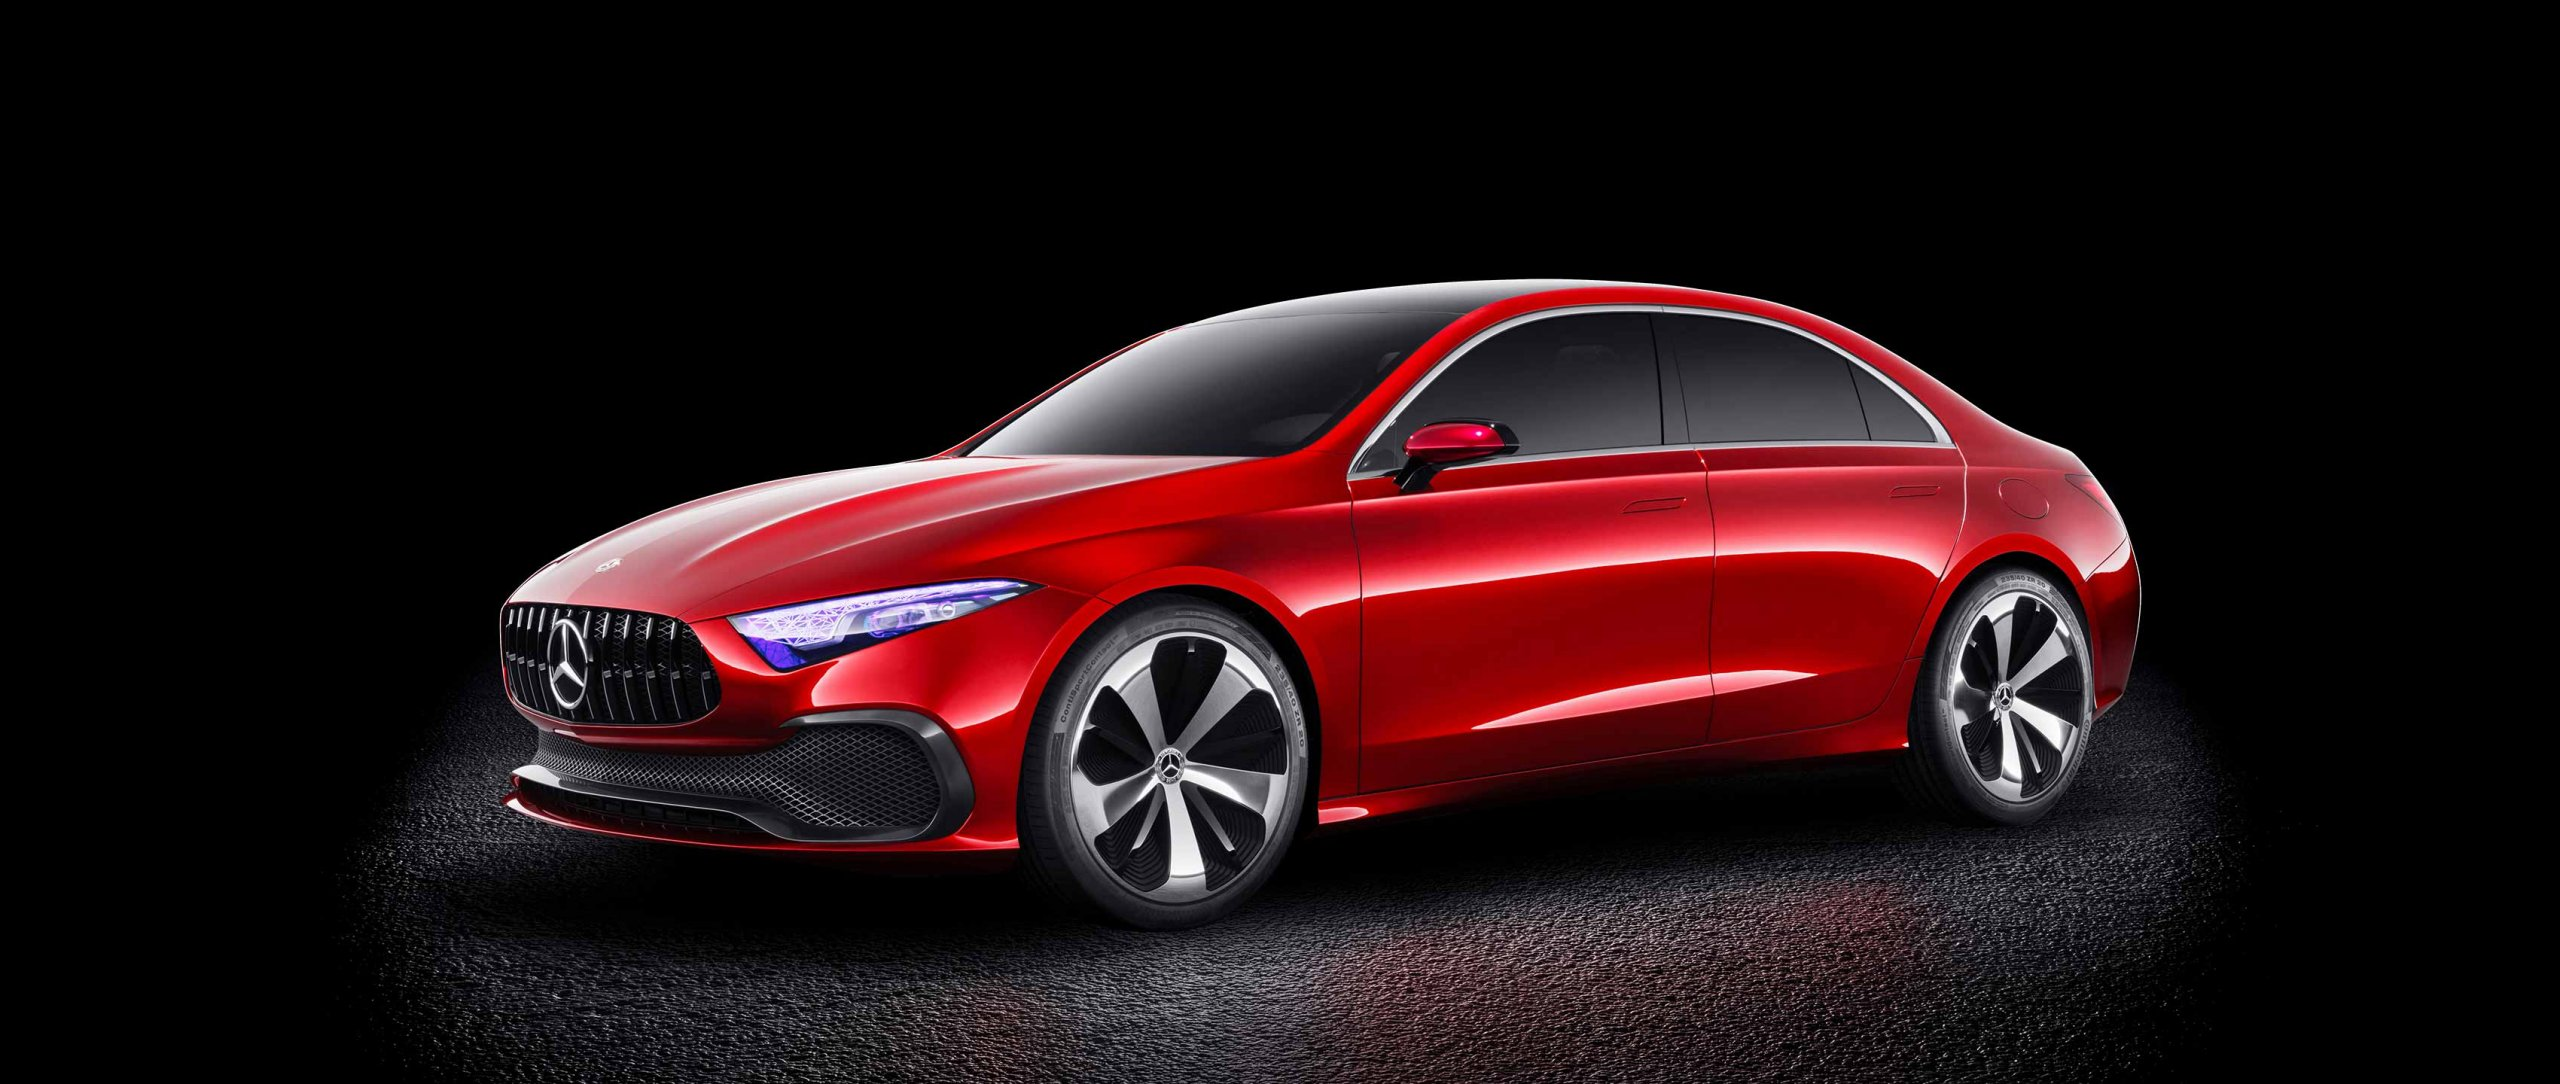 Mercedes-Benz Concept A Sedan – Herald of a new generation.